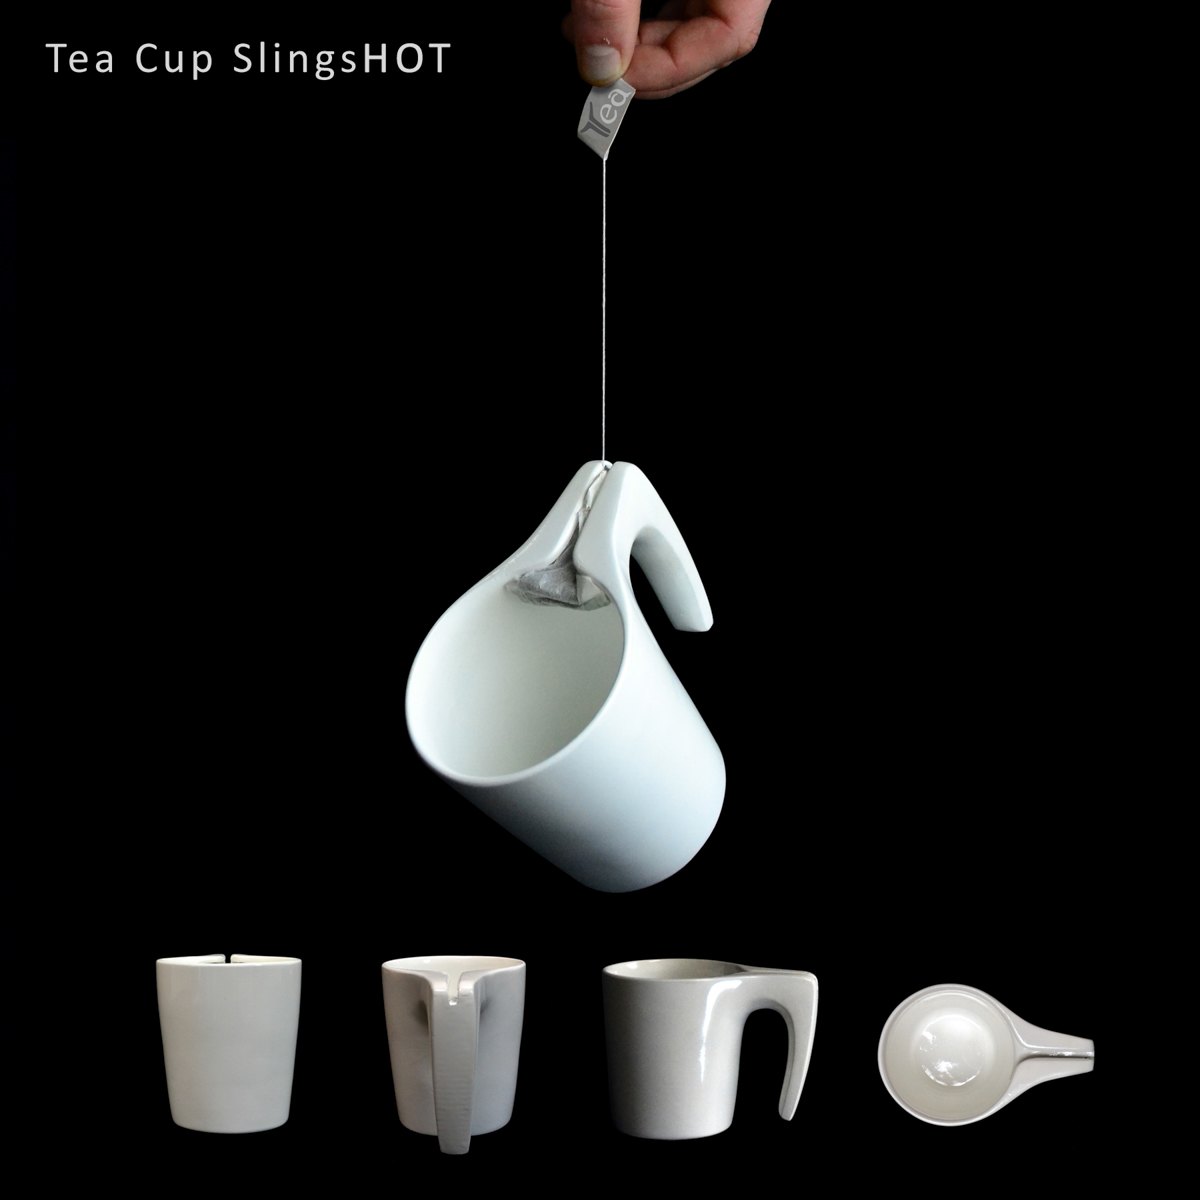 The Tea Cup SlingsHOT Means No More Wet Tea Bags